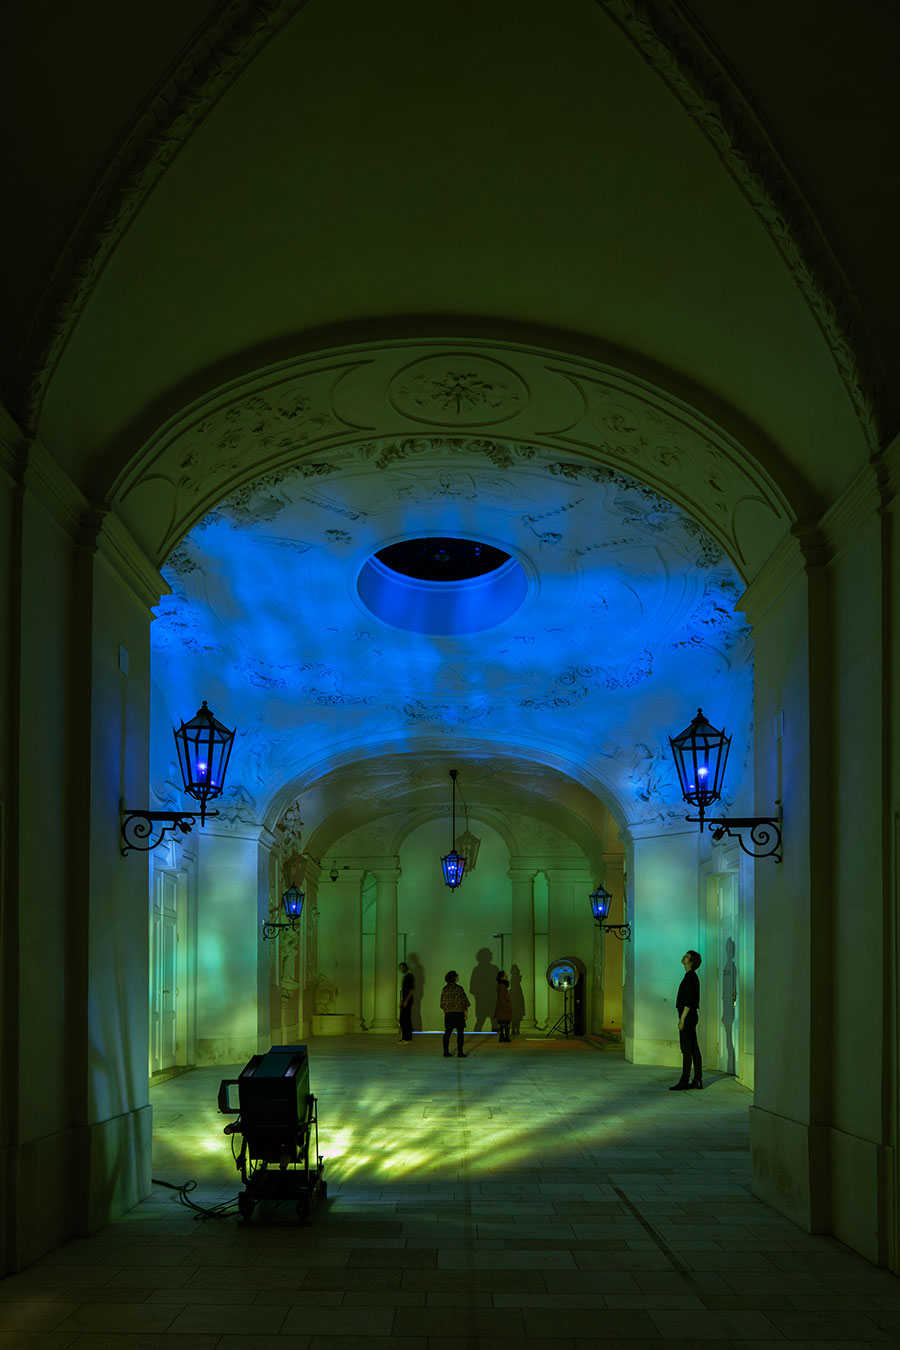 Olafur Eliasson Die organische und kristalline Beschreibung, 1996 Projector, wave machine, colour filter foil, convex mirror The Winter Palace of Prince Eugene of Savoy, Vienna 2015 Photo by Anders Sune Berg Courtesy of Thyssen-Bornemisza Art Contemporary Collection, Vienna © Olafur Eliasson.